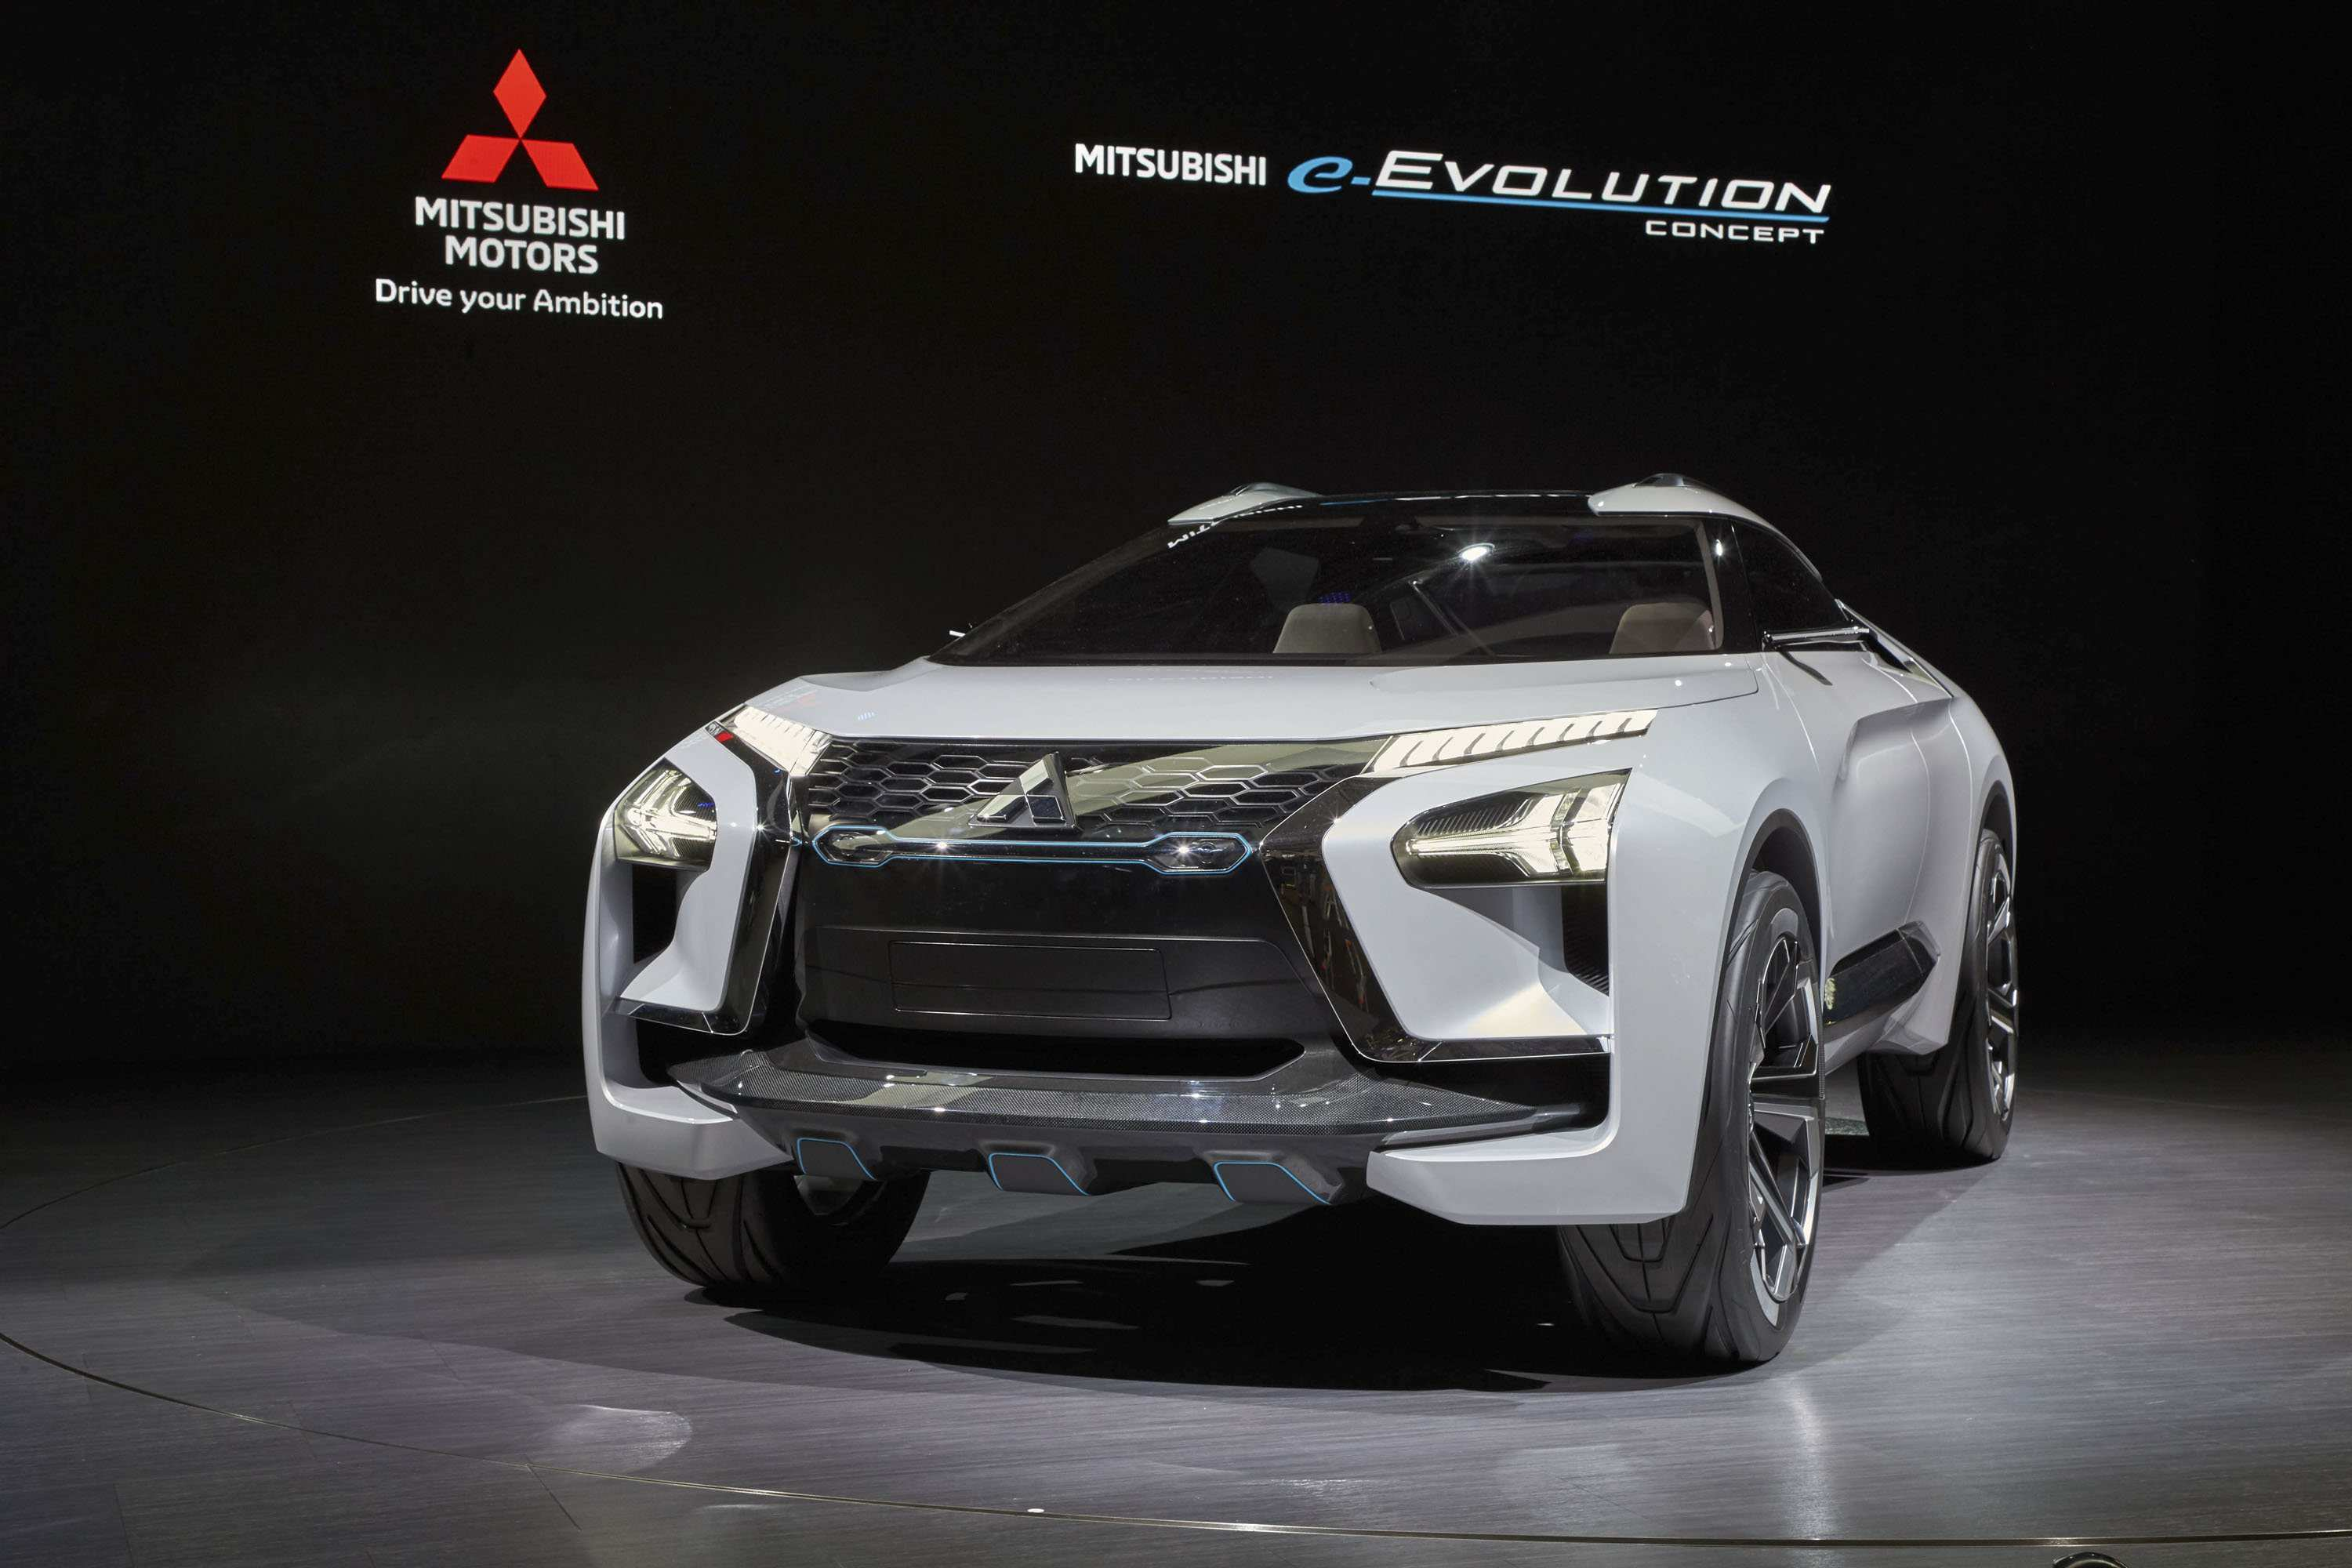 59 The Best Mitsubishi Electric 2020 Concept And Review